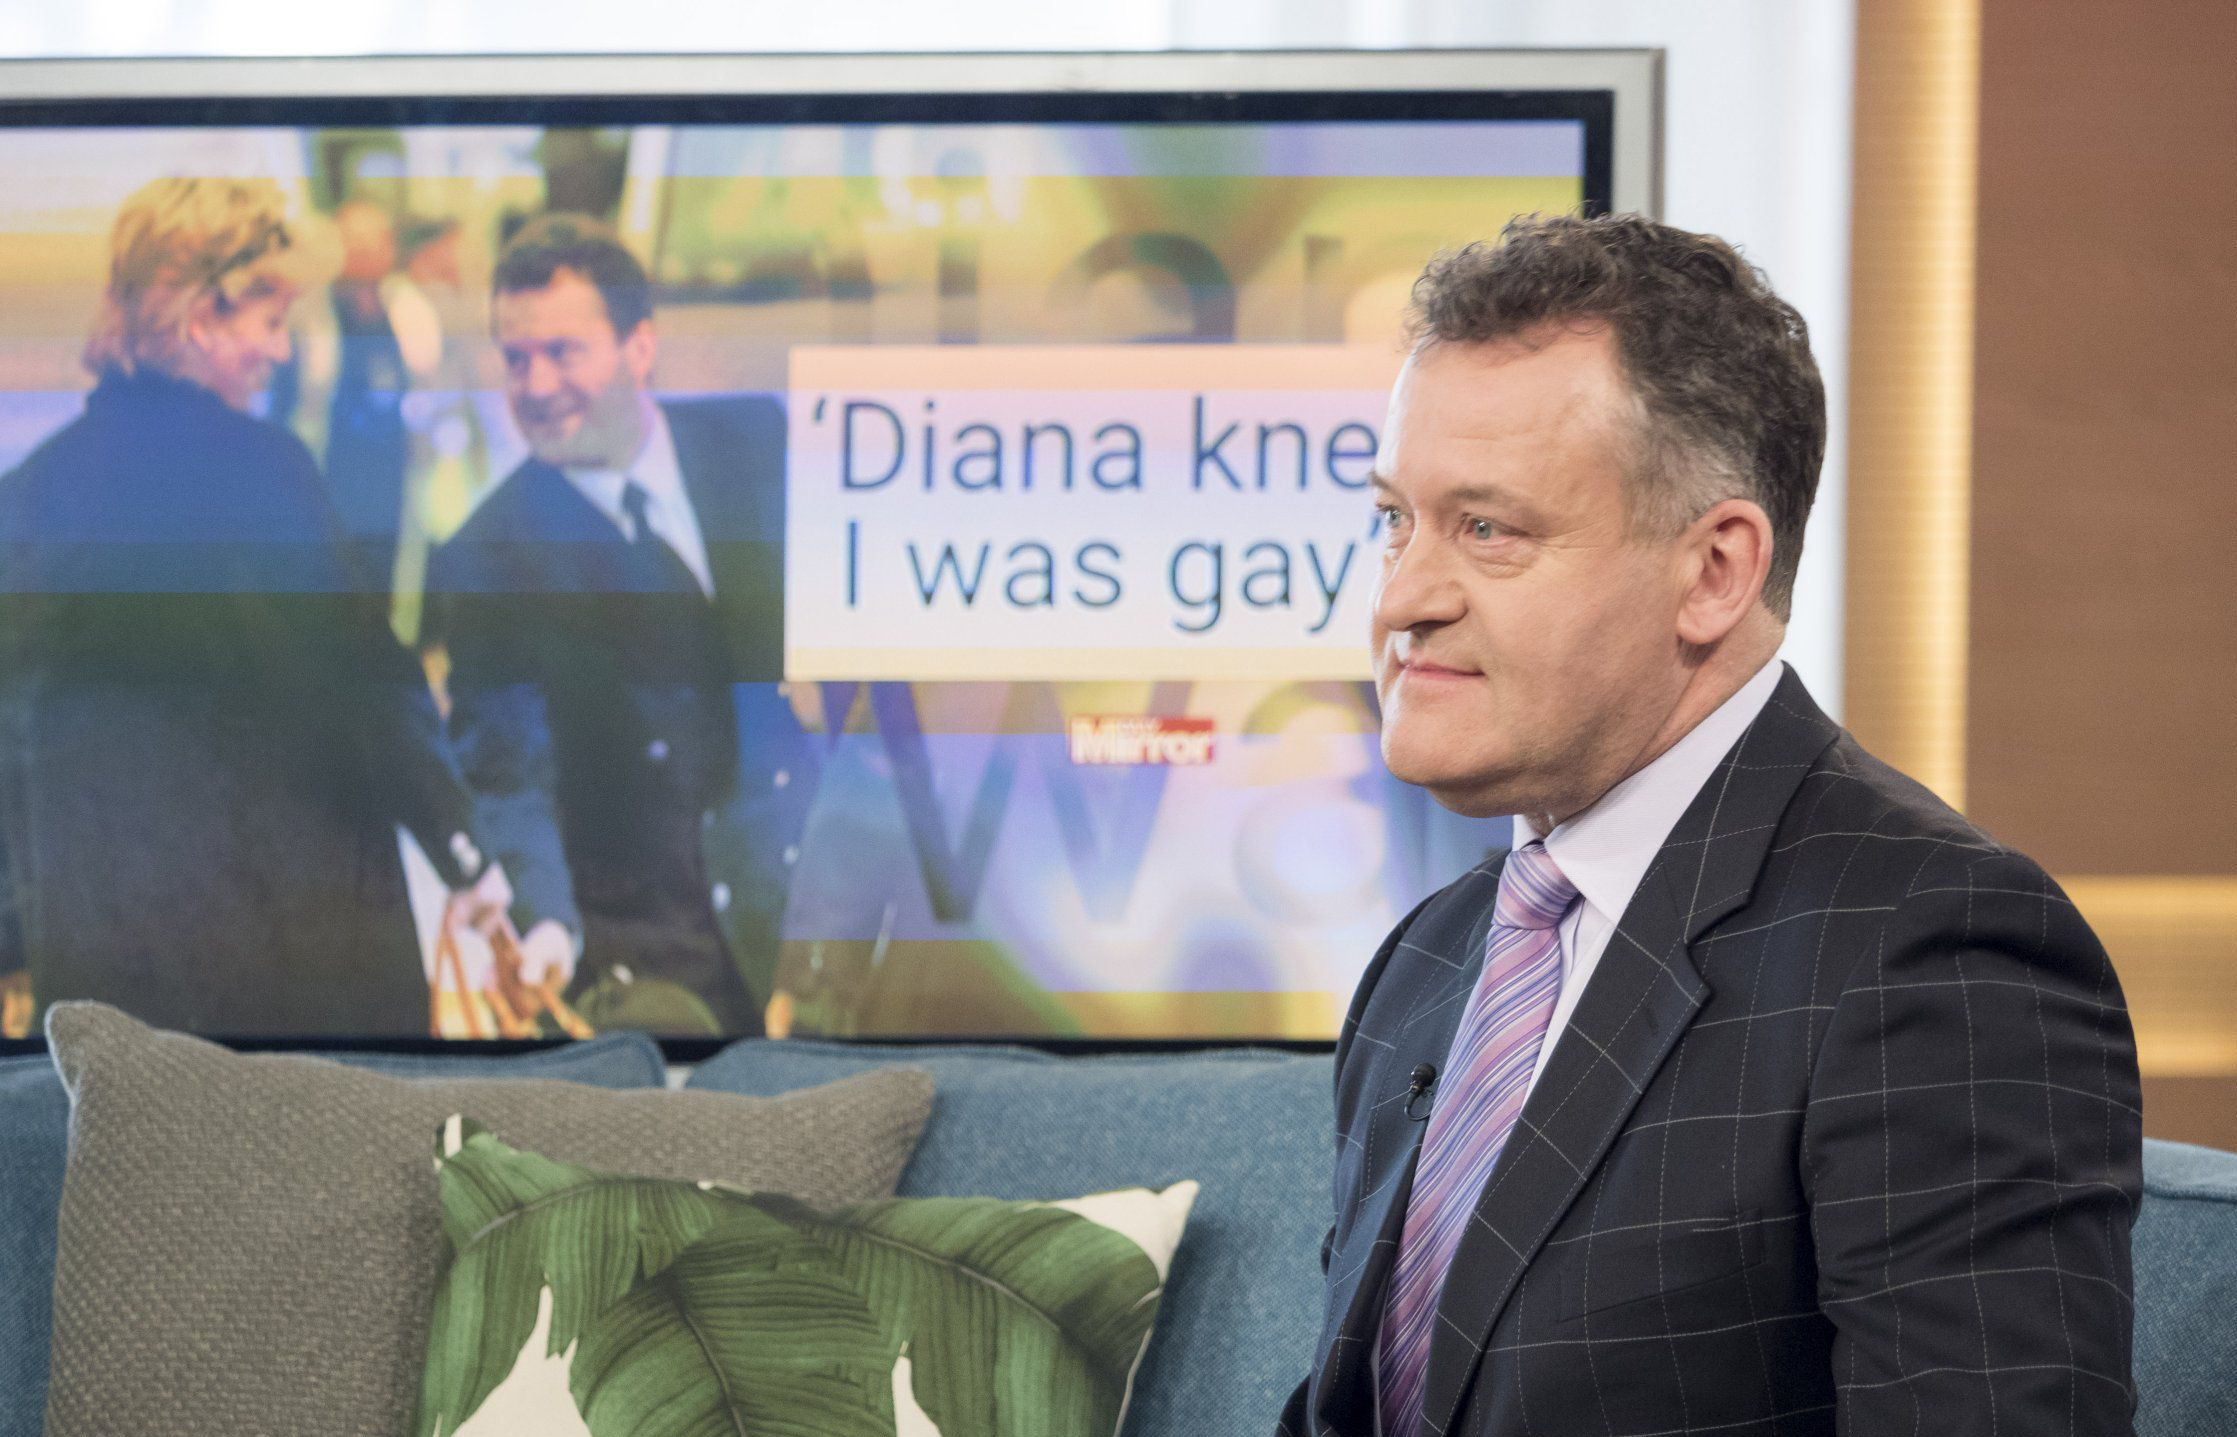 Paul Burrell reveals his wife knew he was gay before their marriage